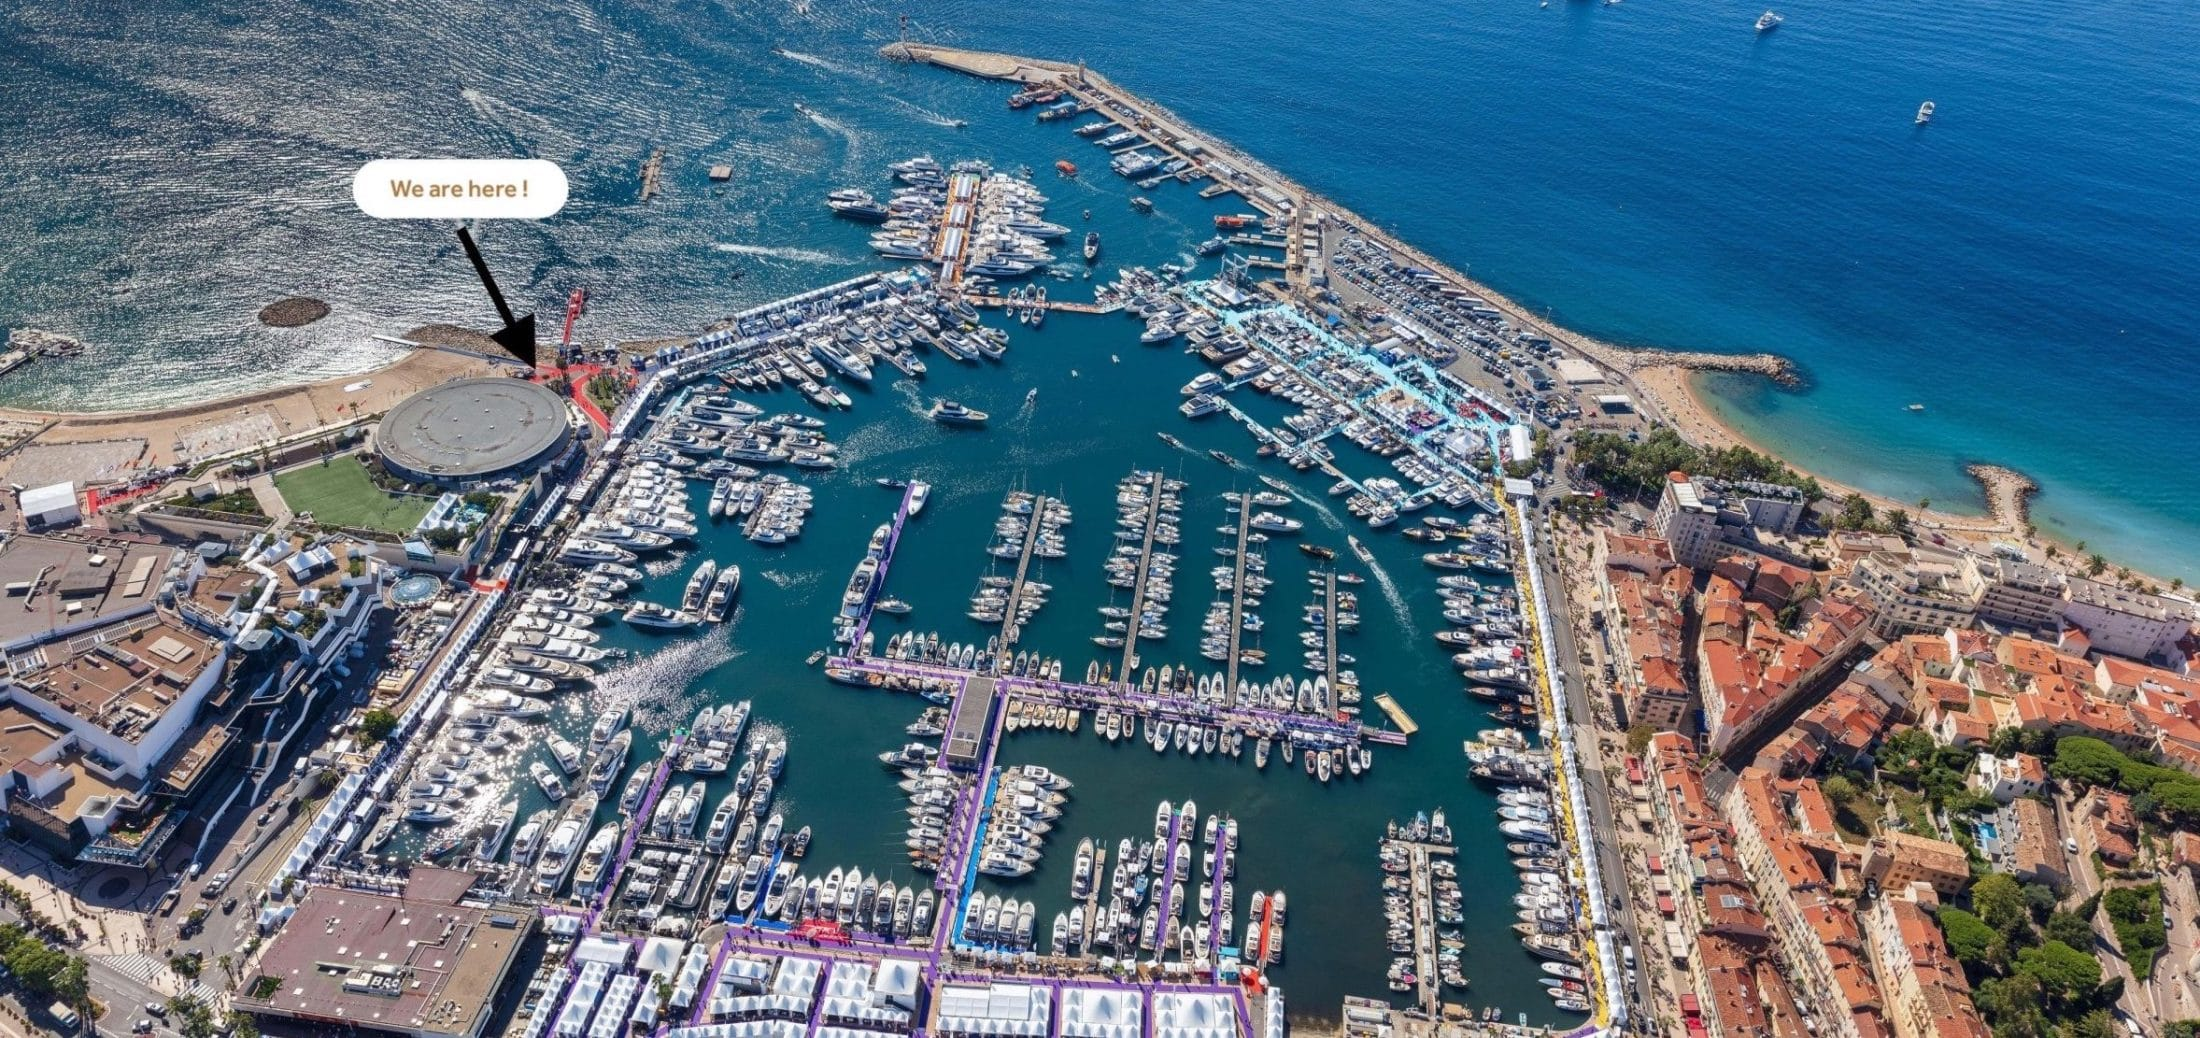 Iguana Yachts in Cannes Yachting Festival